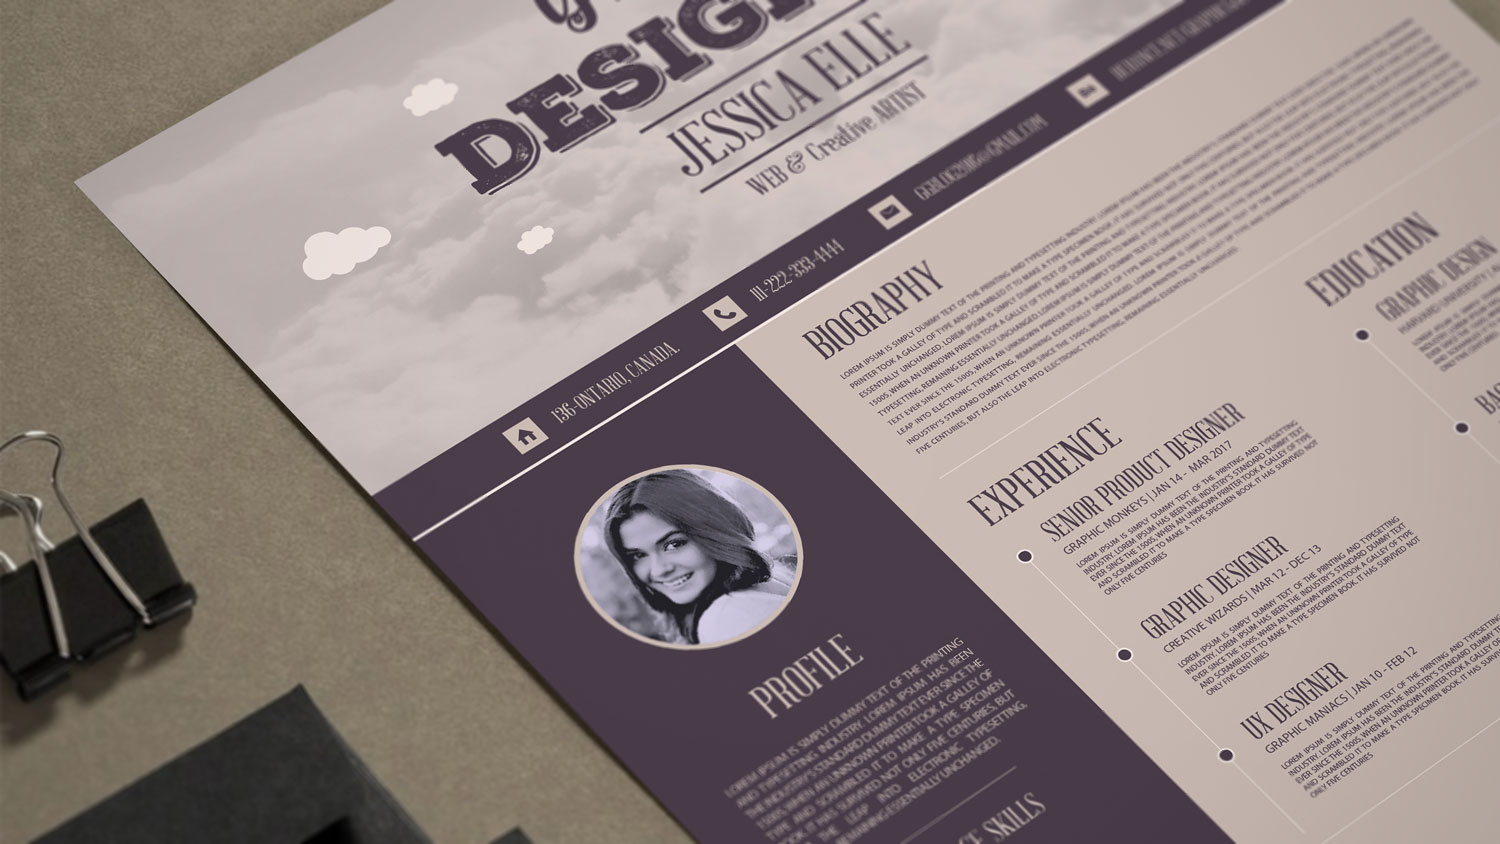 Great 1 Page Resume Template Thick 12 Team Schedule Template Shaped 15660 Avery Template 2 Page Brochure Template Old 2003 Powerpoint Templates Pink2015 Buzzwords For Resumes 15 Free Resume Templates | Creative Bloq